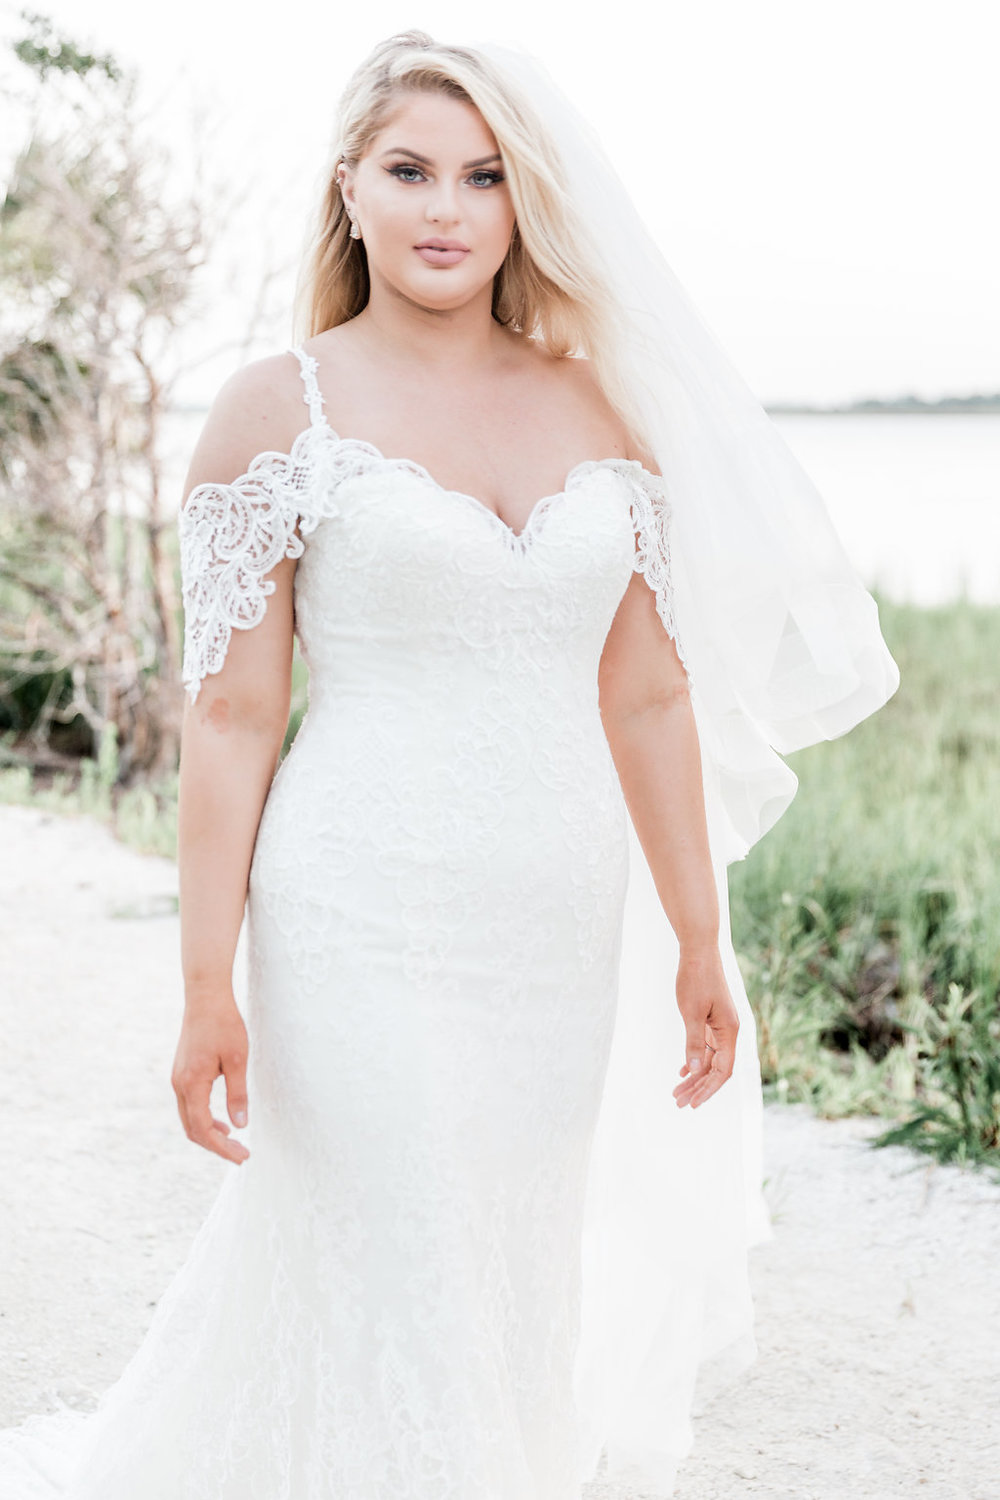 savannah-bridal-shop-beachy-bridal-glam-beach-wedding-looks-and-inspiration-southern-lens-photography-maggie-sottero-11.jpg